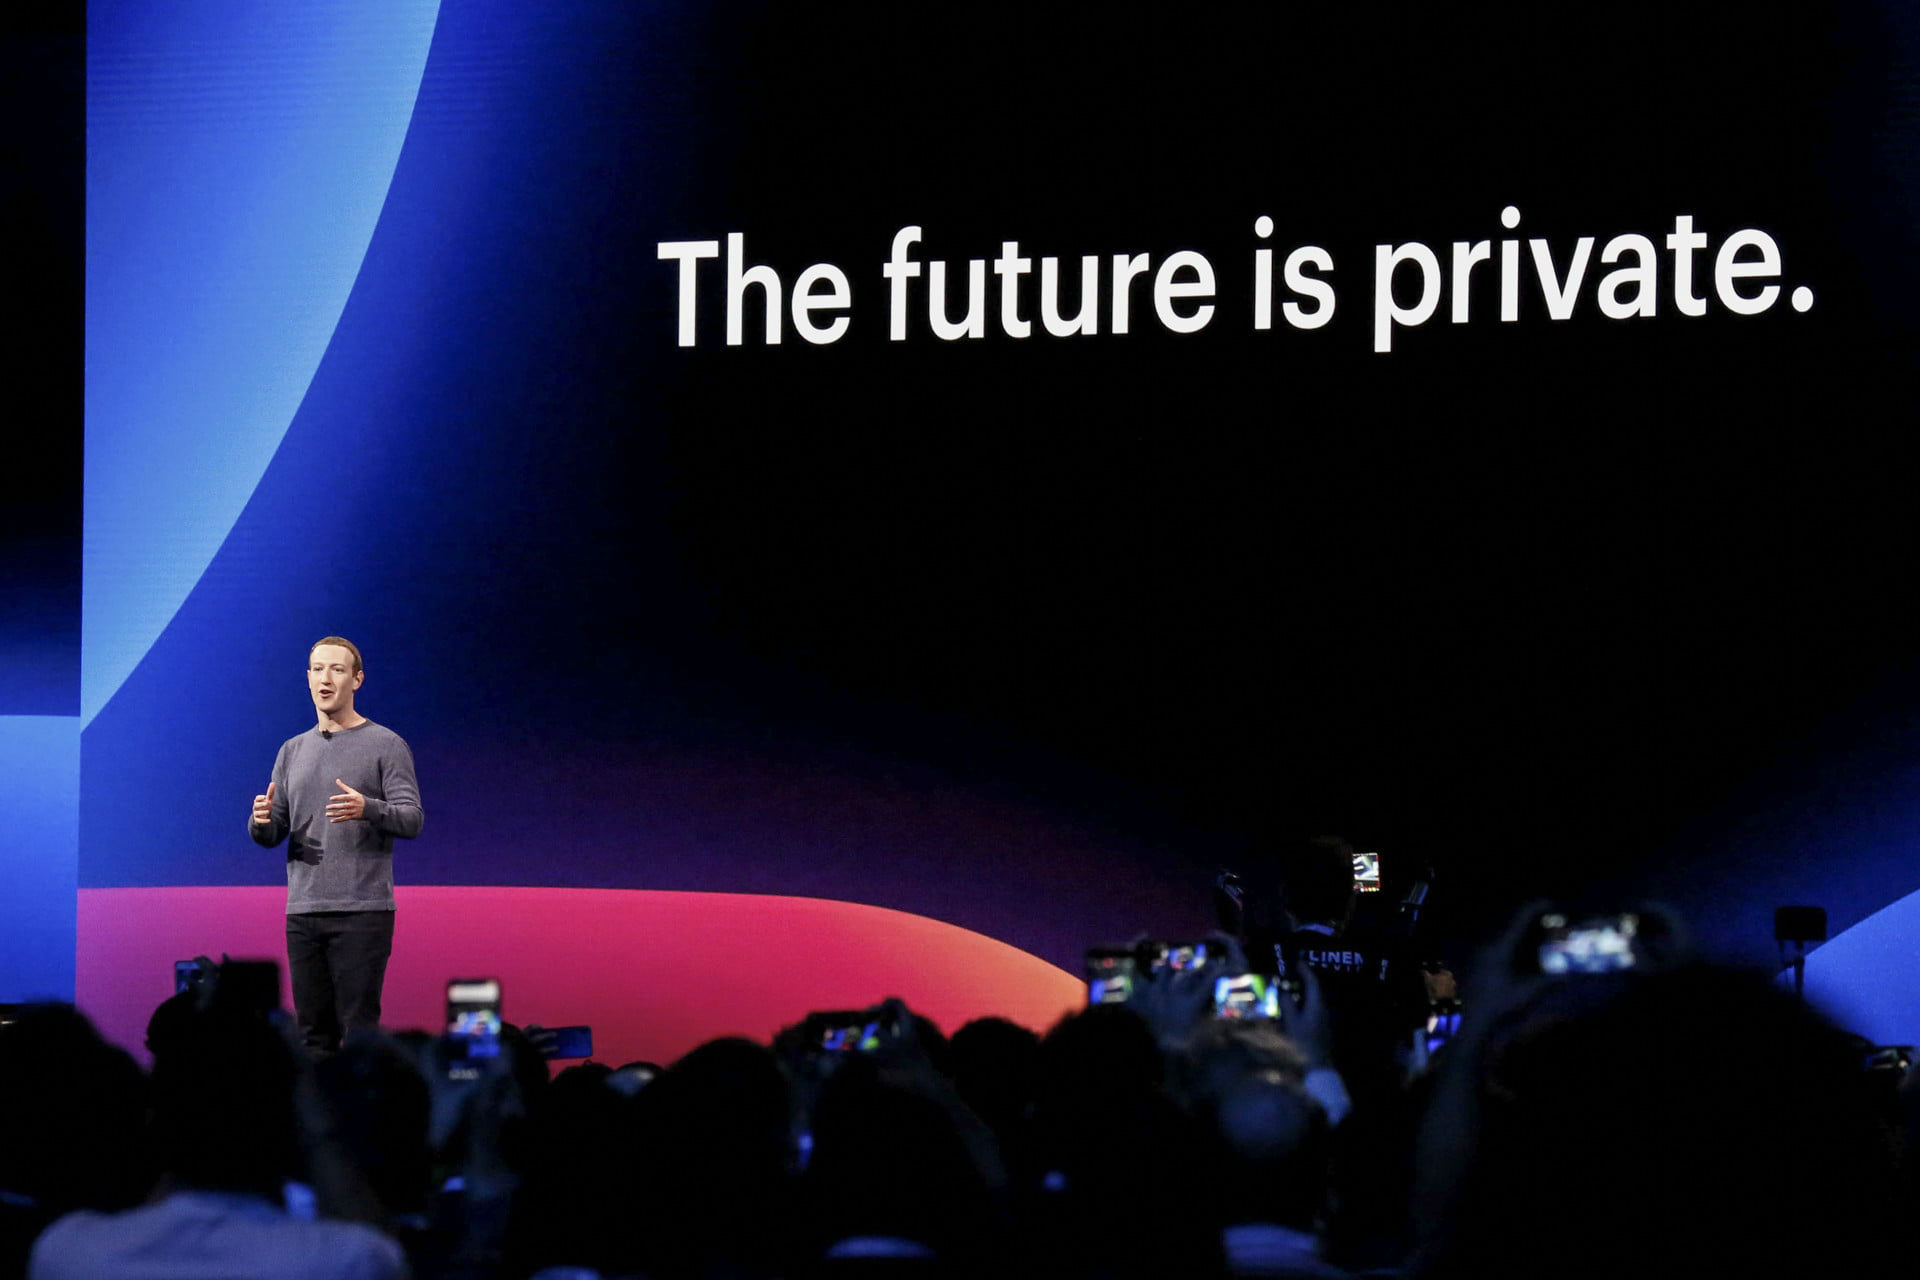 Future is private